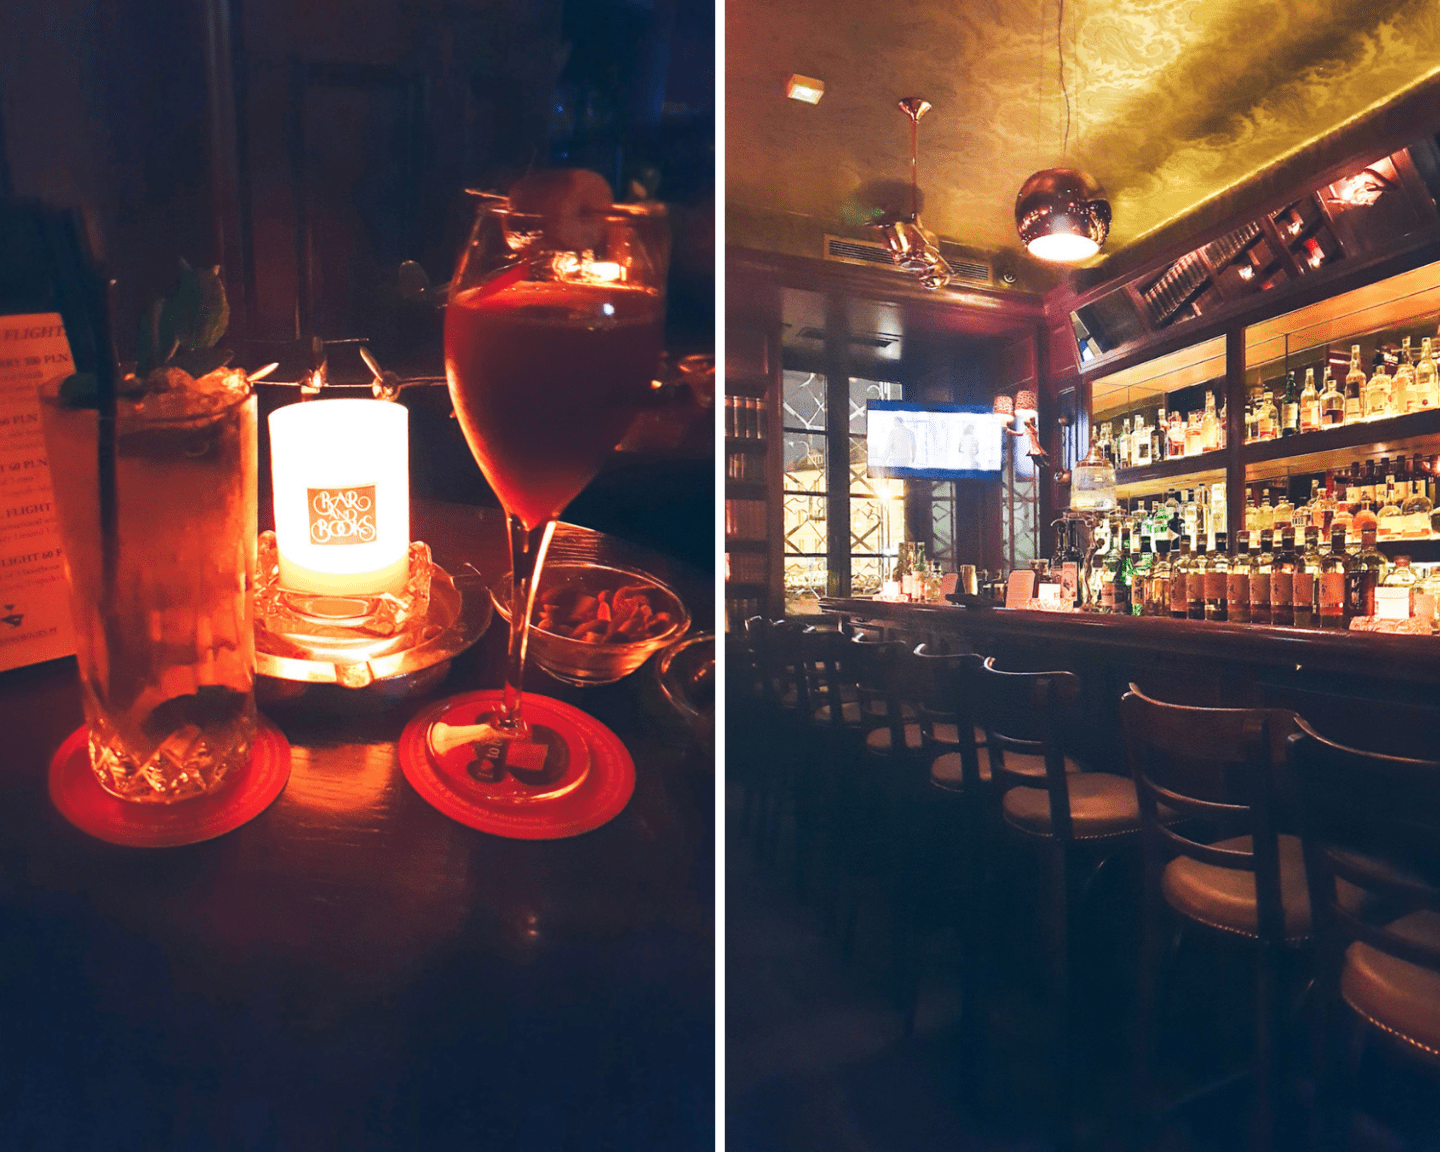 Bar & Books, one of the best cocktail bars in Warsaw